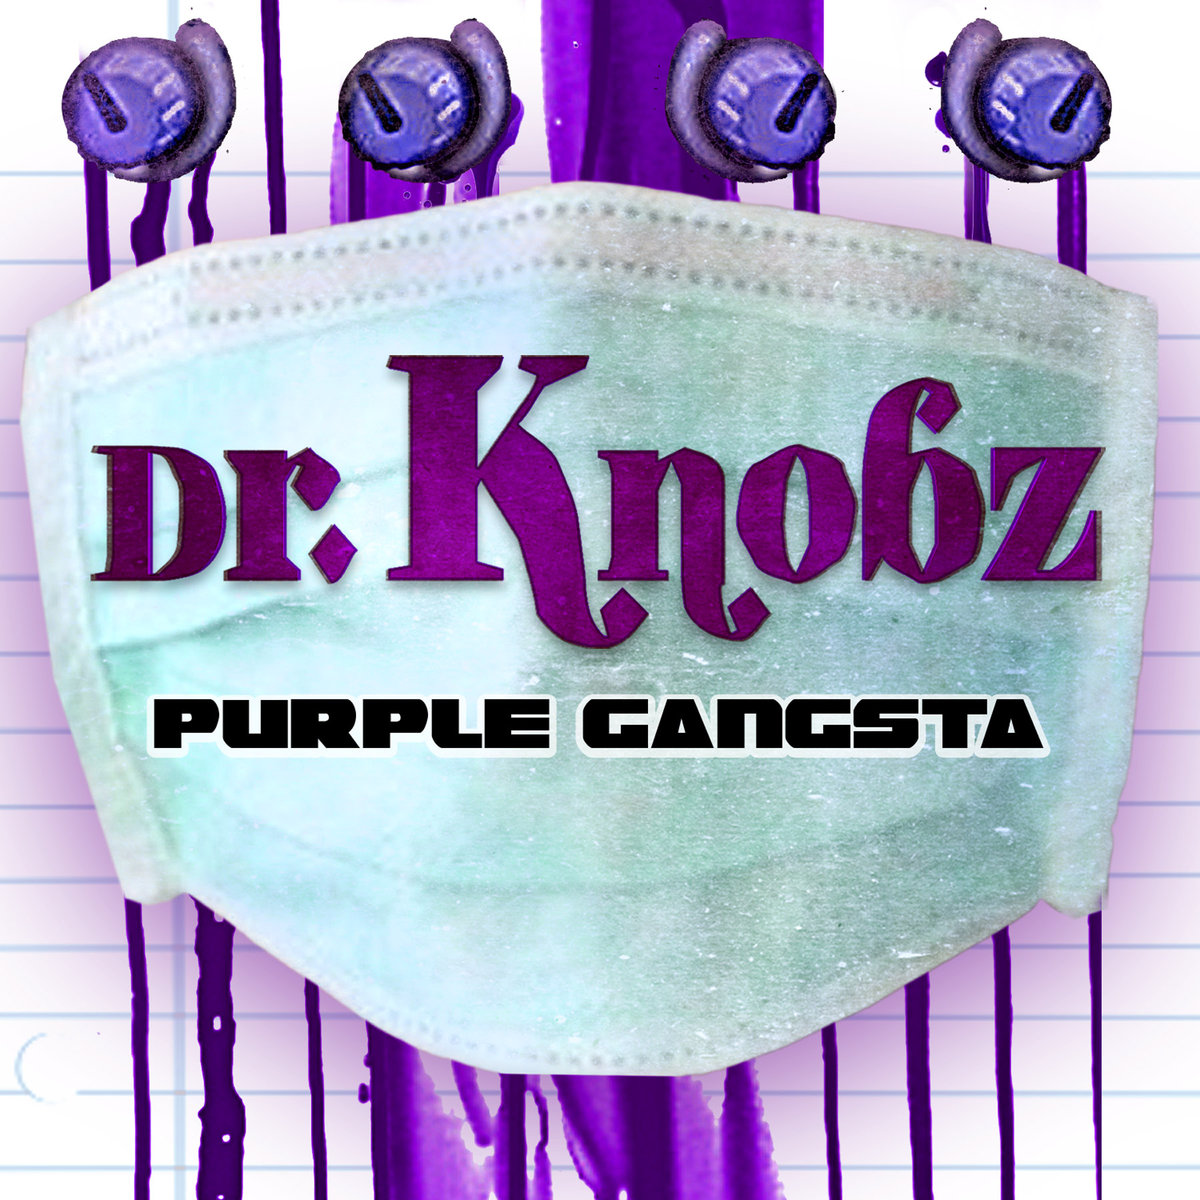 Dr. Knobz - Purple Gangsta